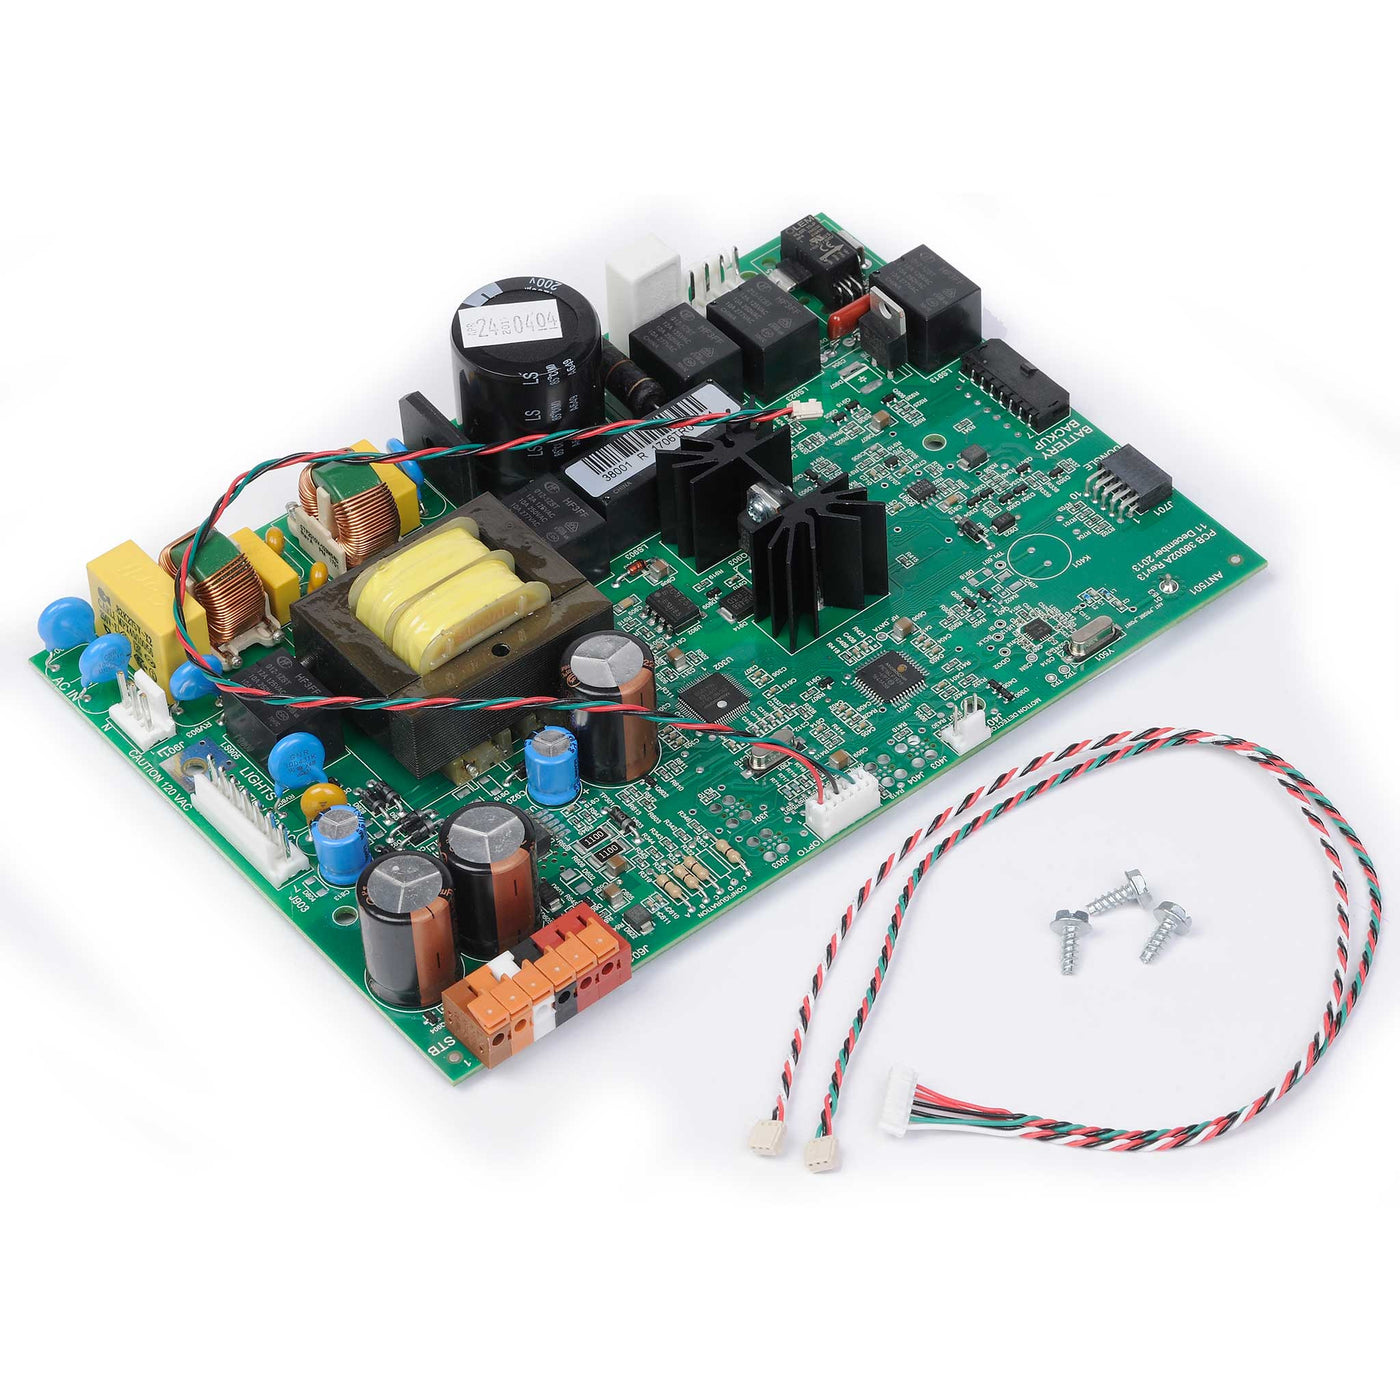 Pcb Identify The Manufacturer Of These Circuit Boards Electrical